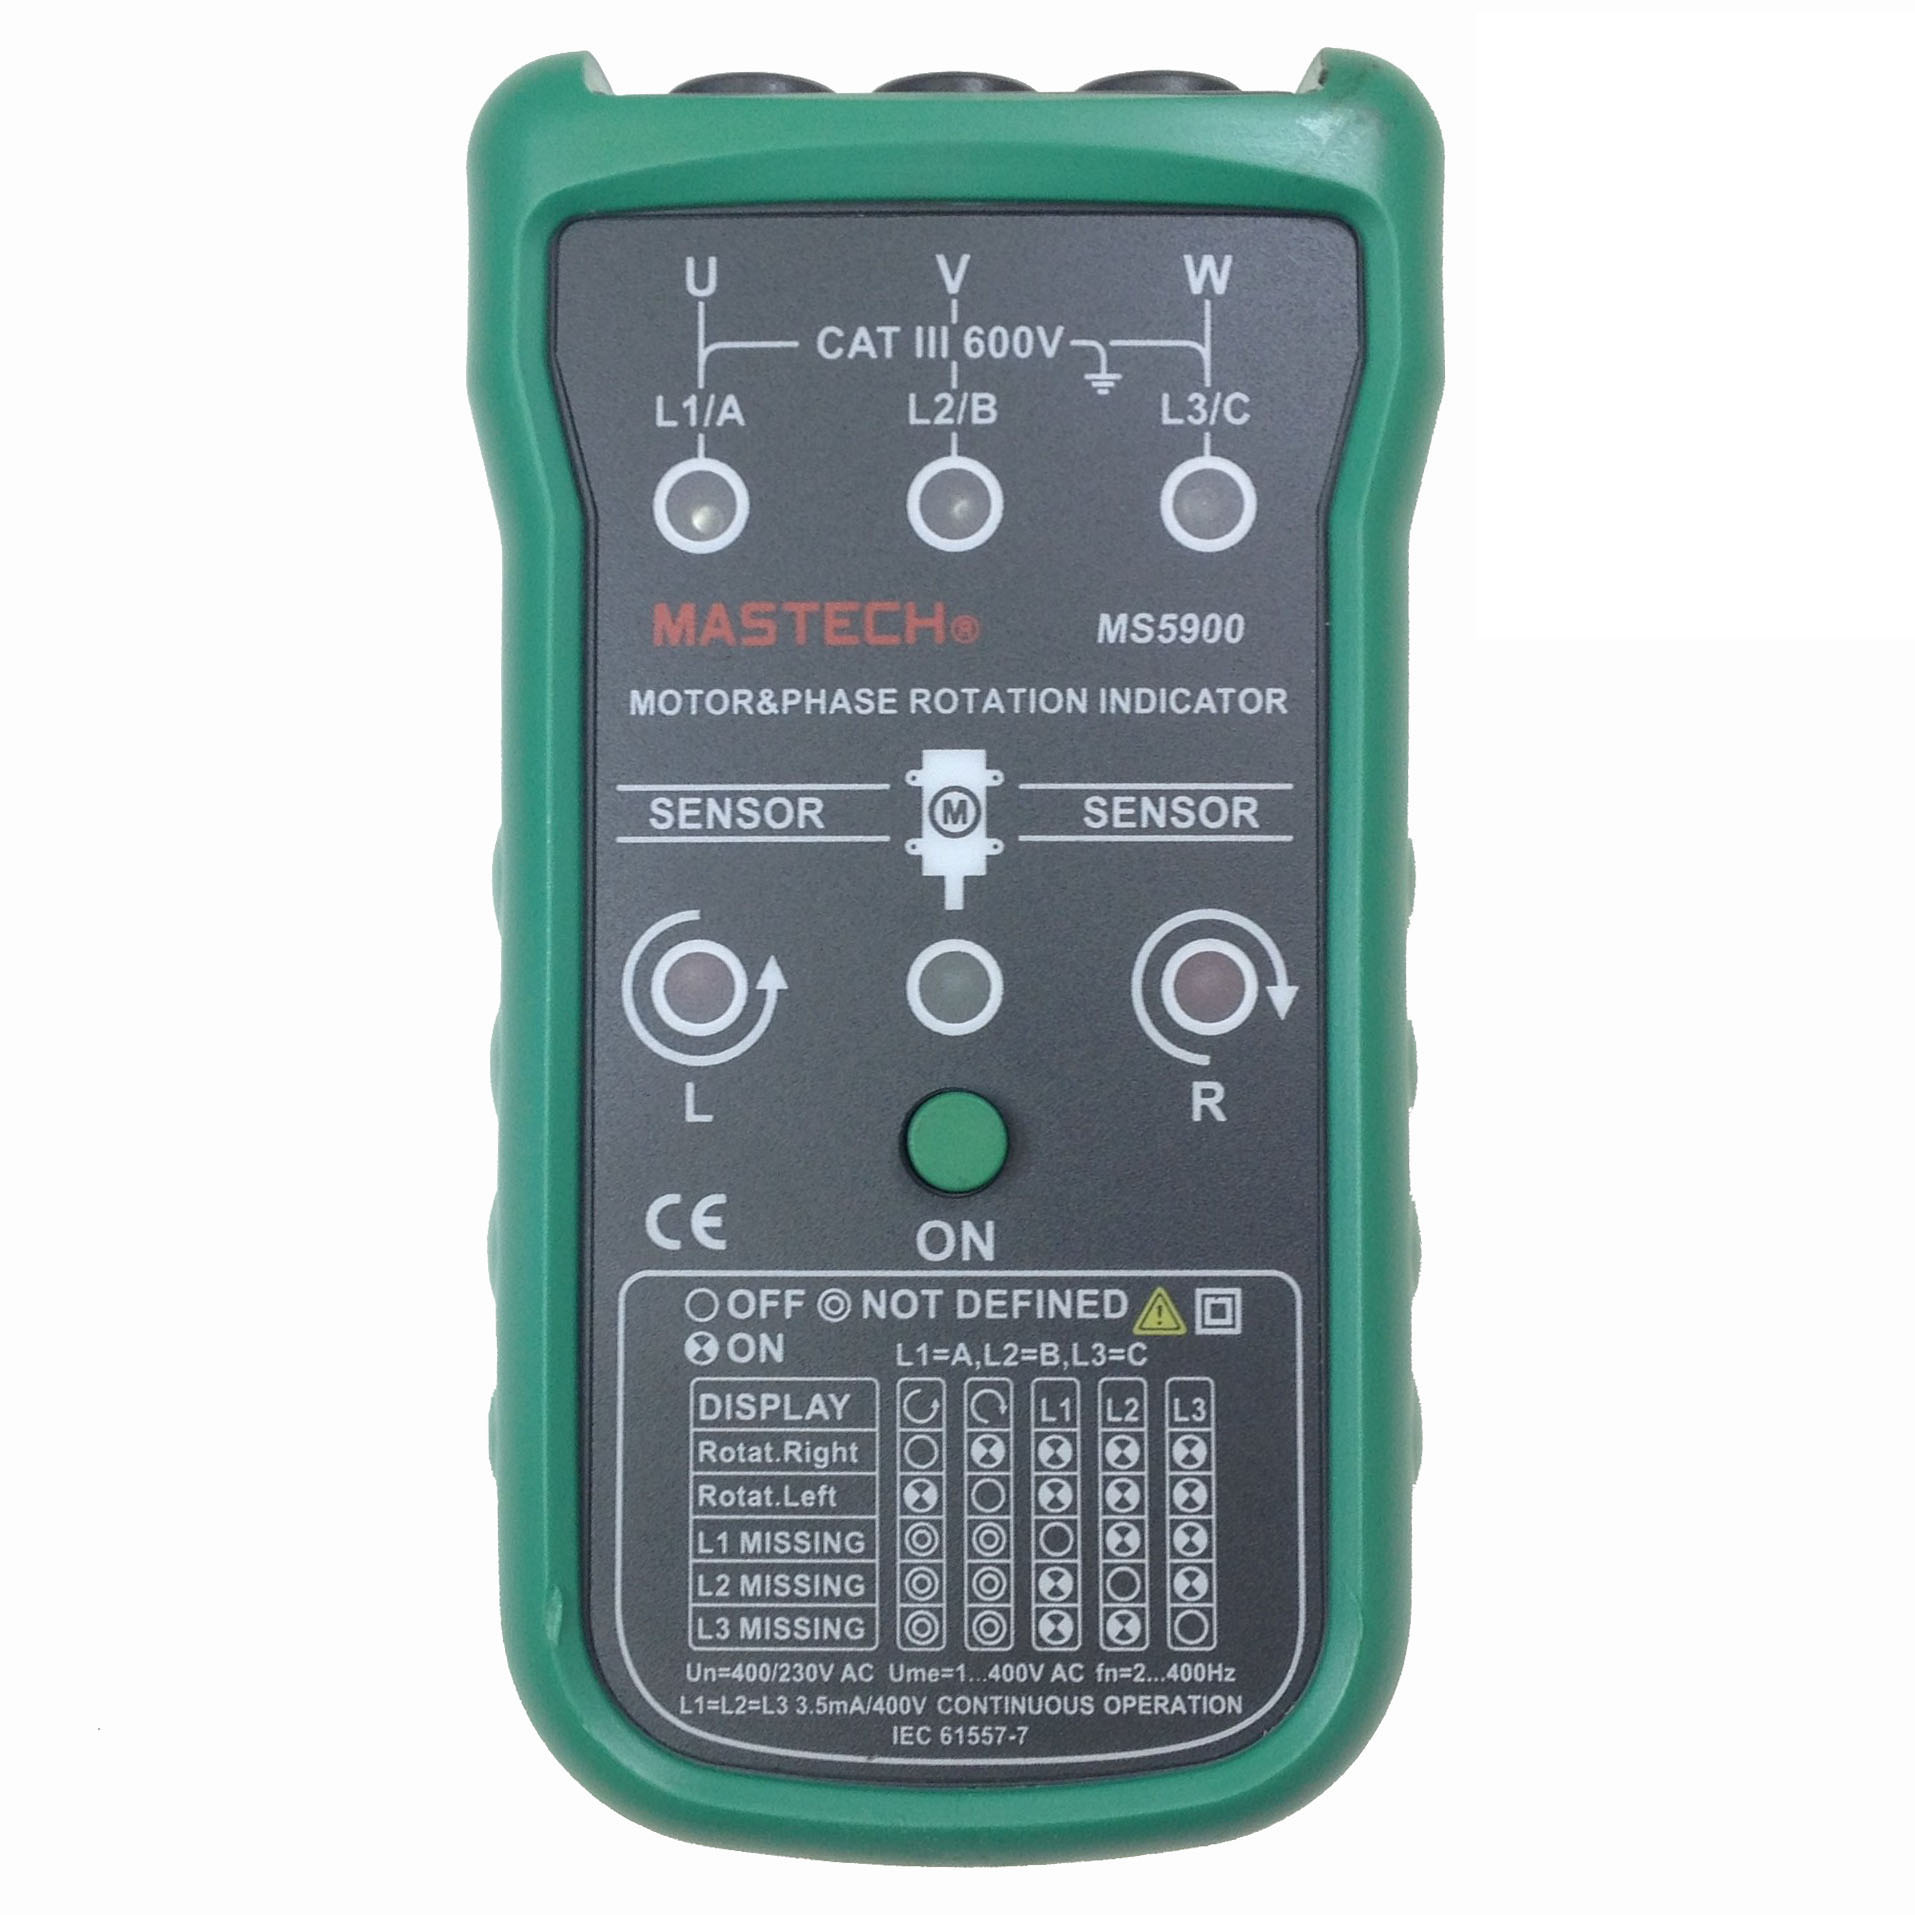 Mastech ms5900 three phase rotation indicator bf ebay motor and phase rotation indicator is a handheld battery operated instrument designed to detect rotary field of three phase systems and determine sciox Gallery